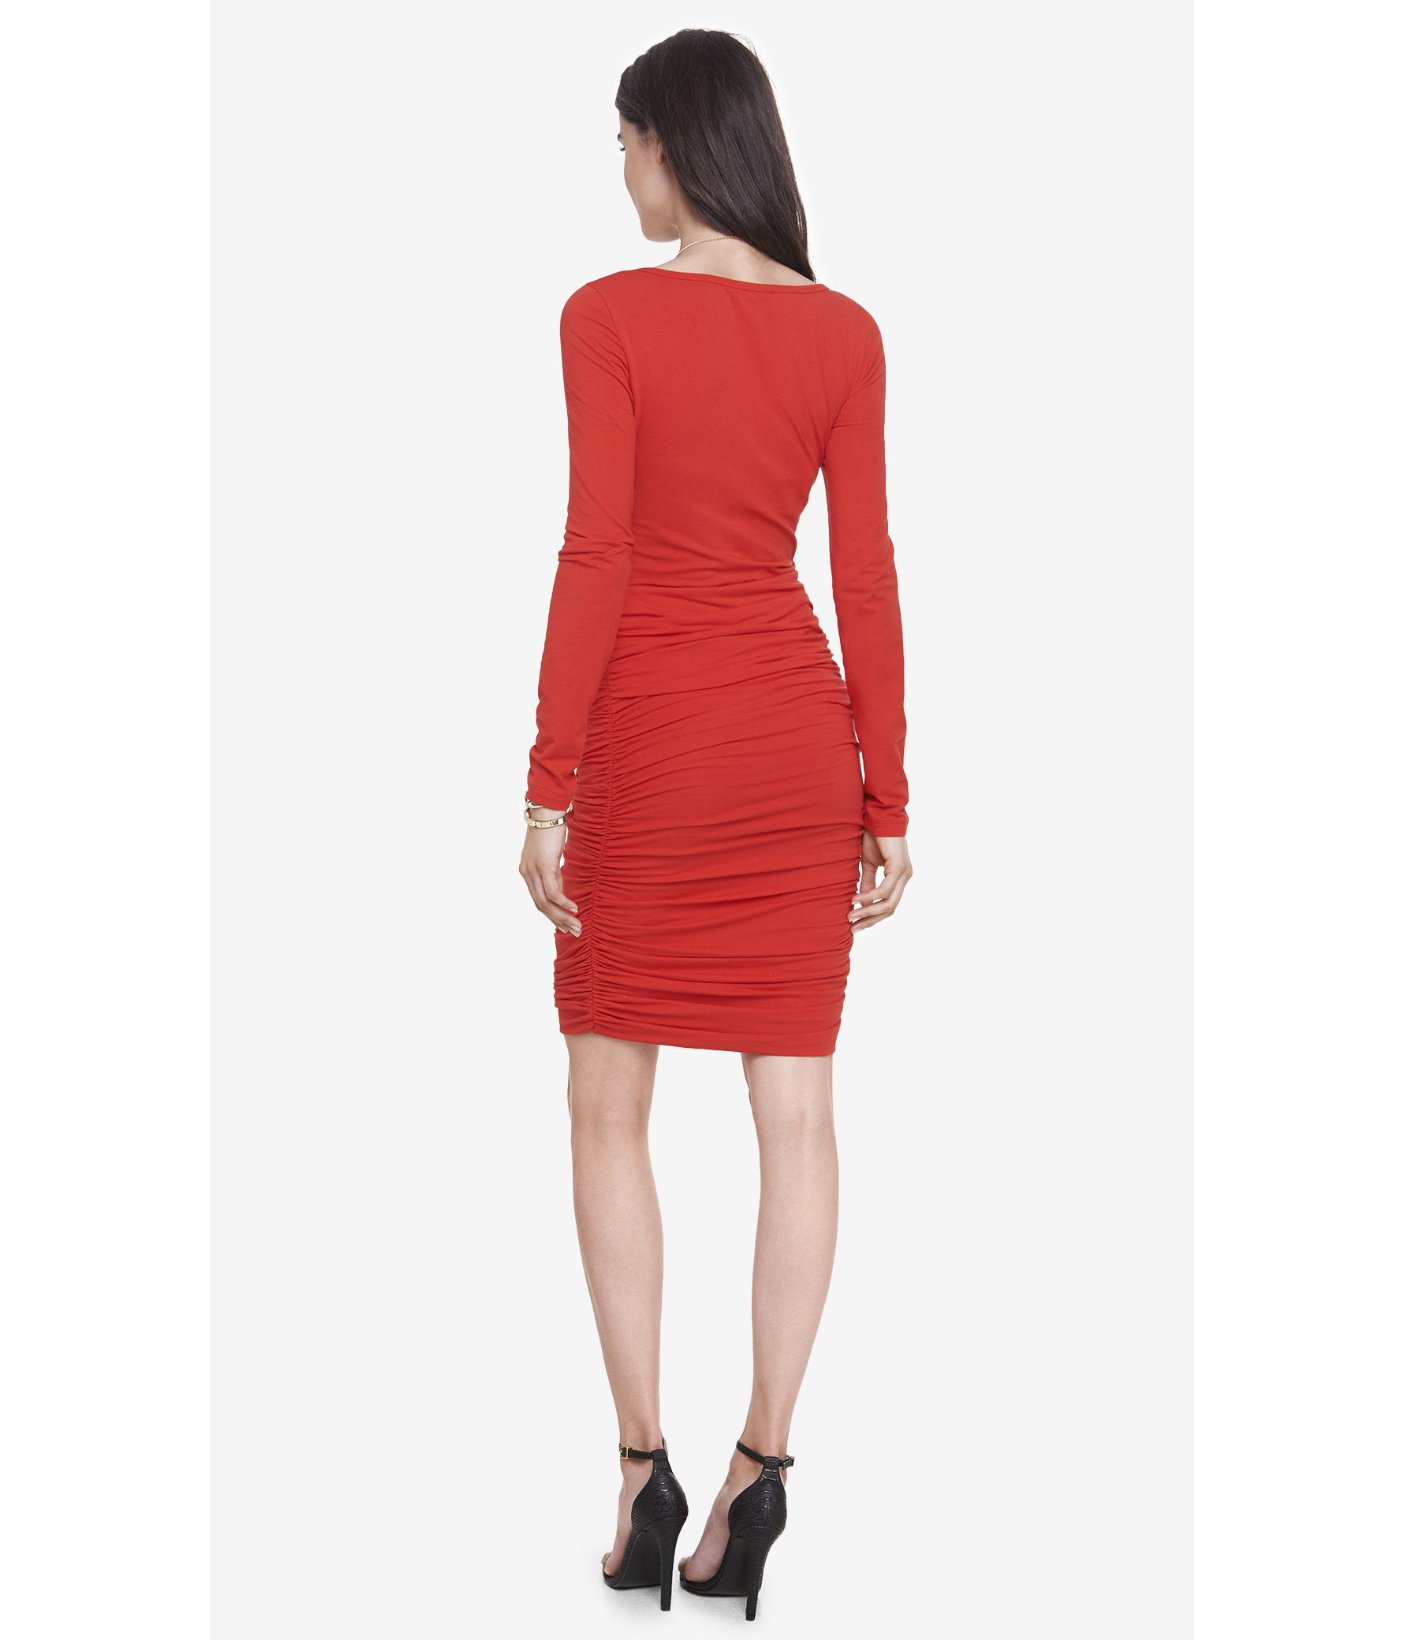 Lyst express red long sleeve ruched dress in red for I see both sides like chanel shirt